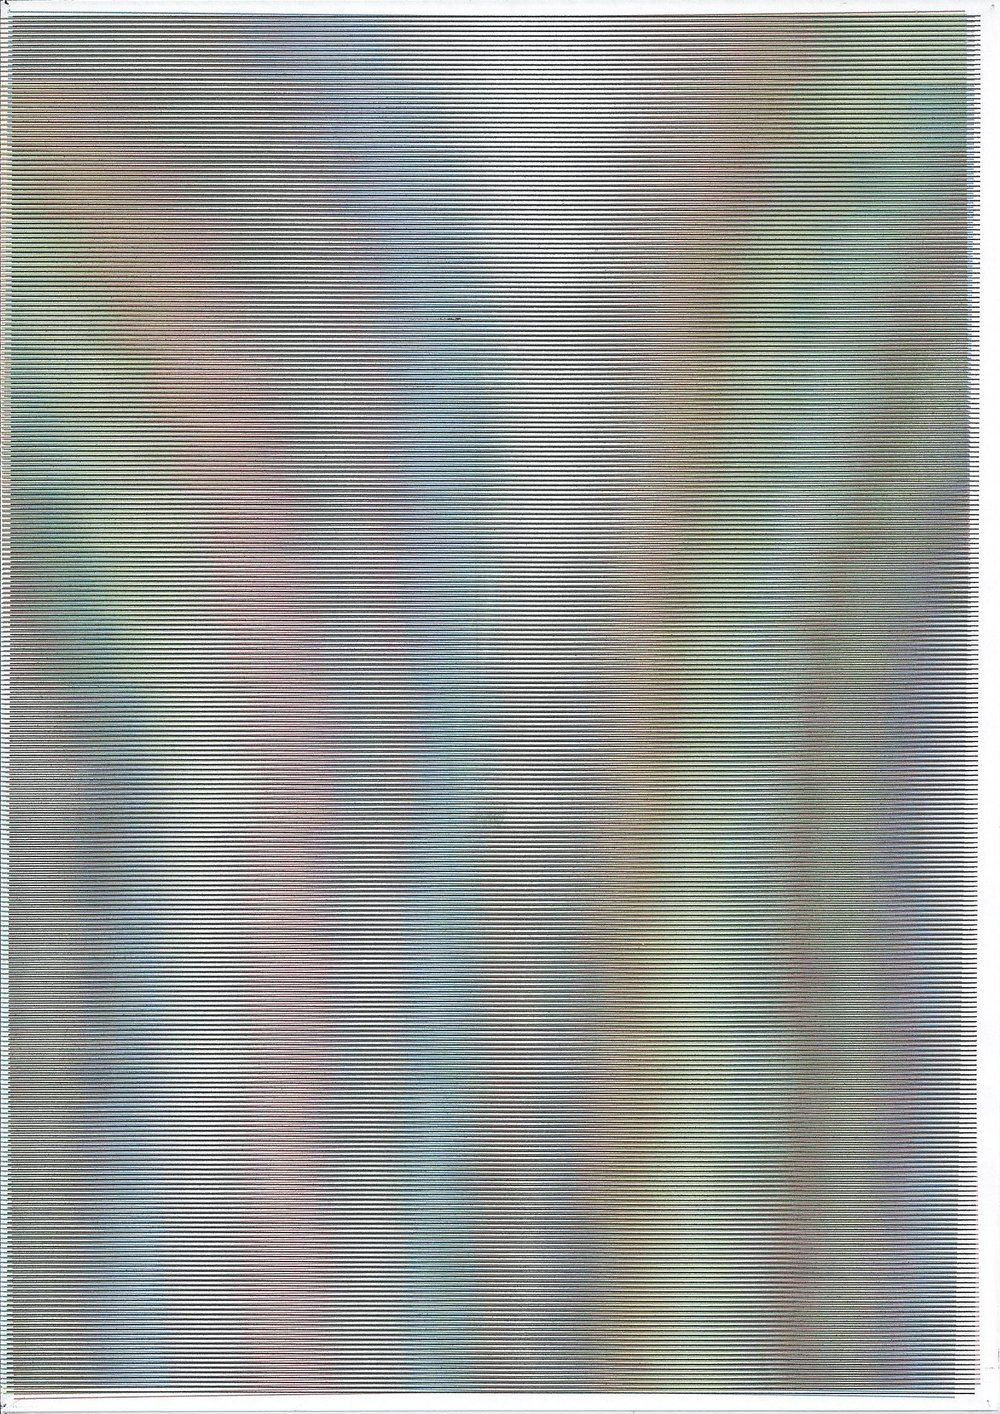 Word Documents , Inkjet print on A4 200g Fabrianno paper, 2015